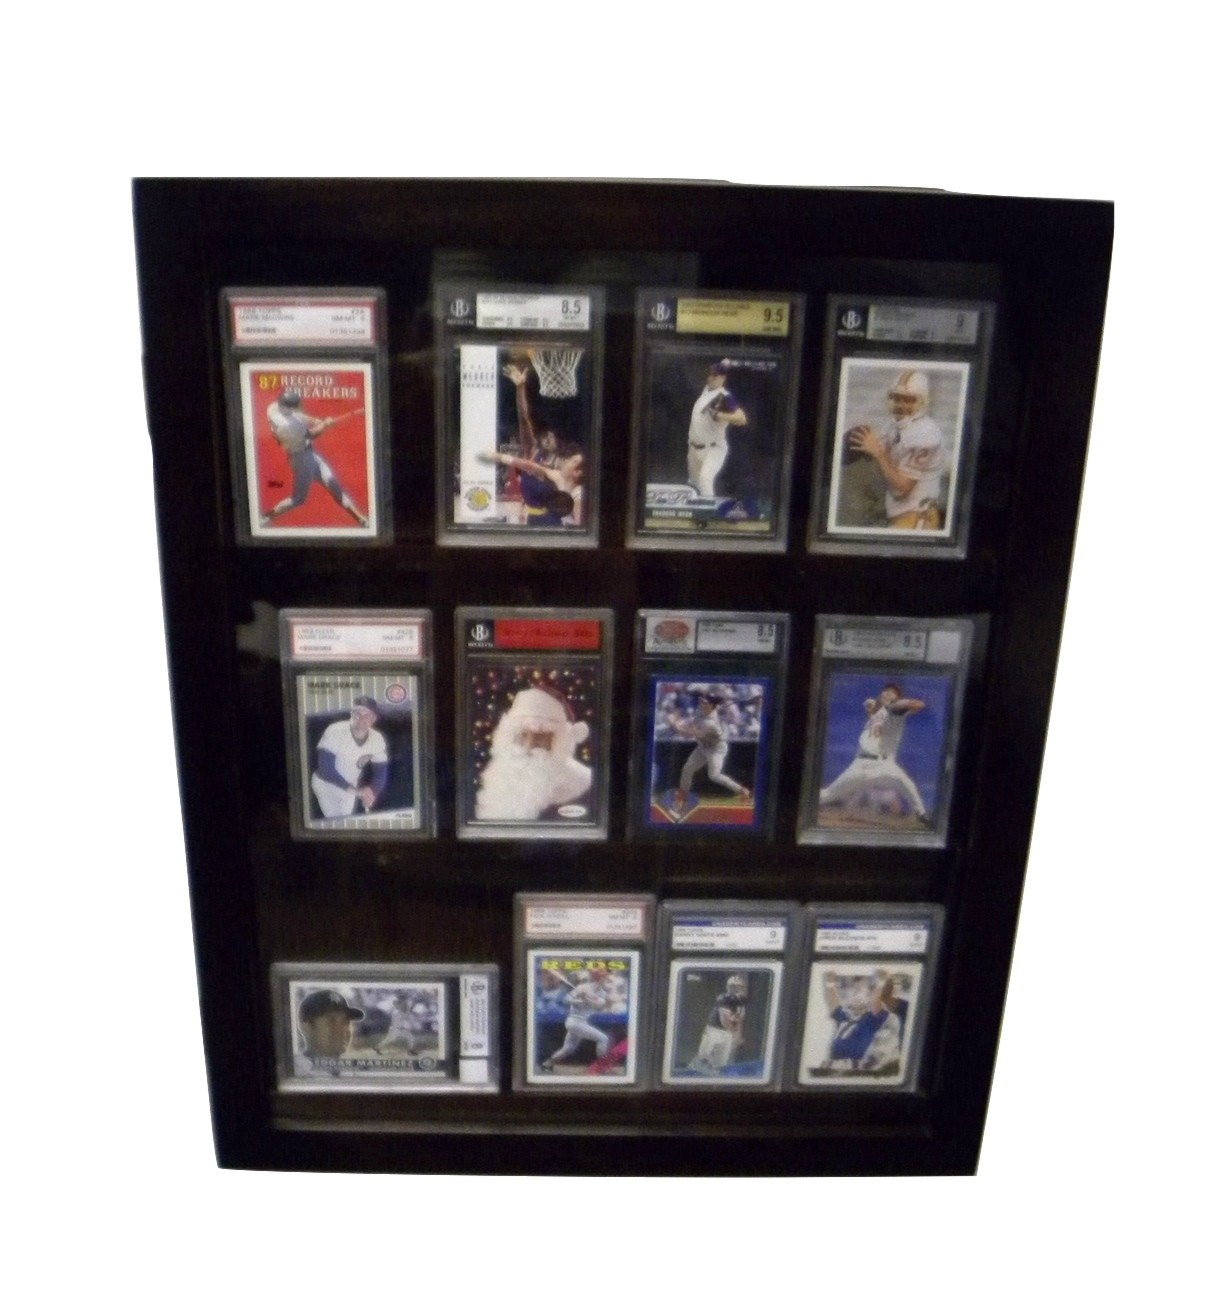 Amazon.com : 12 PSA Graded Card Display Case 12PSAB : Sports Related ...